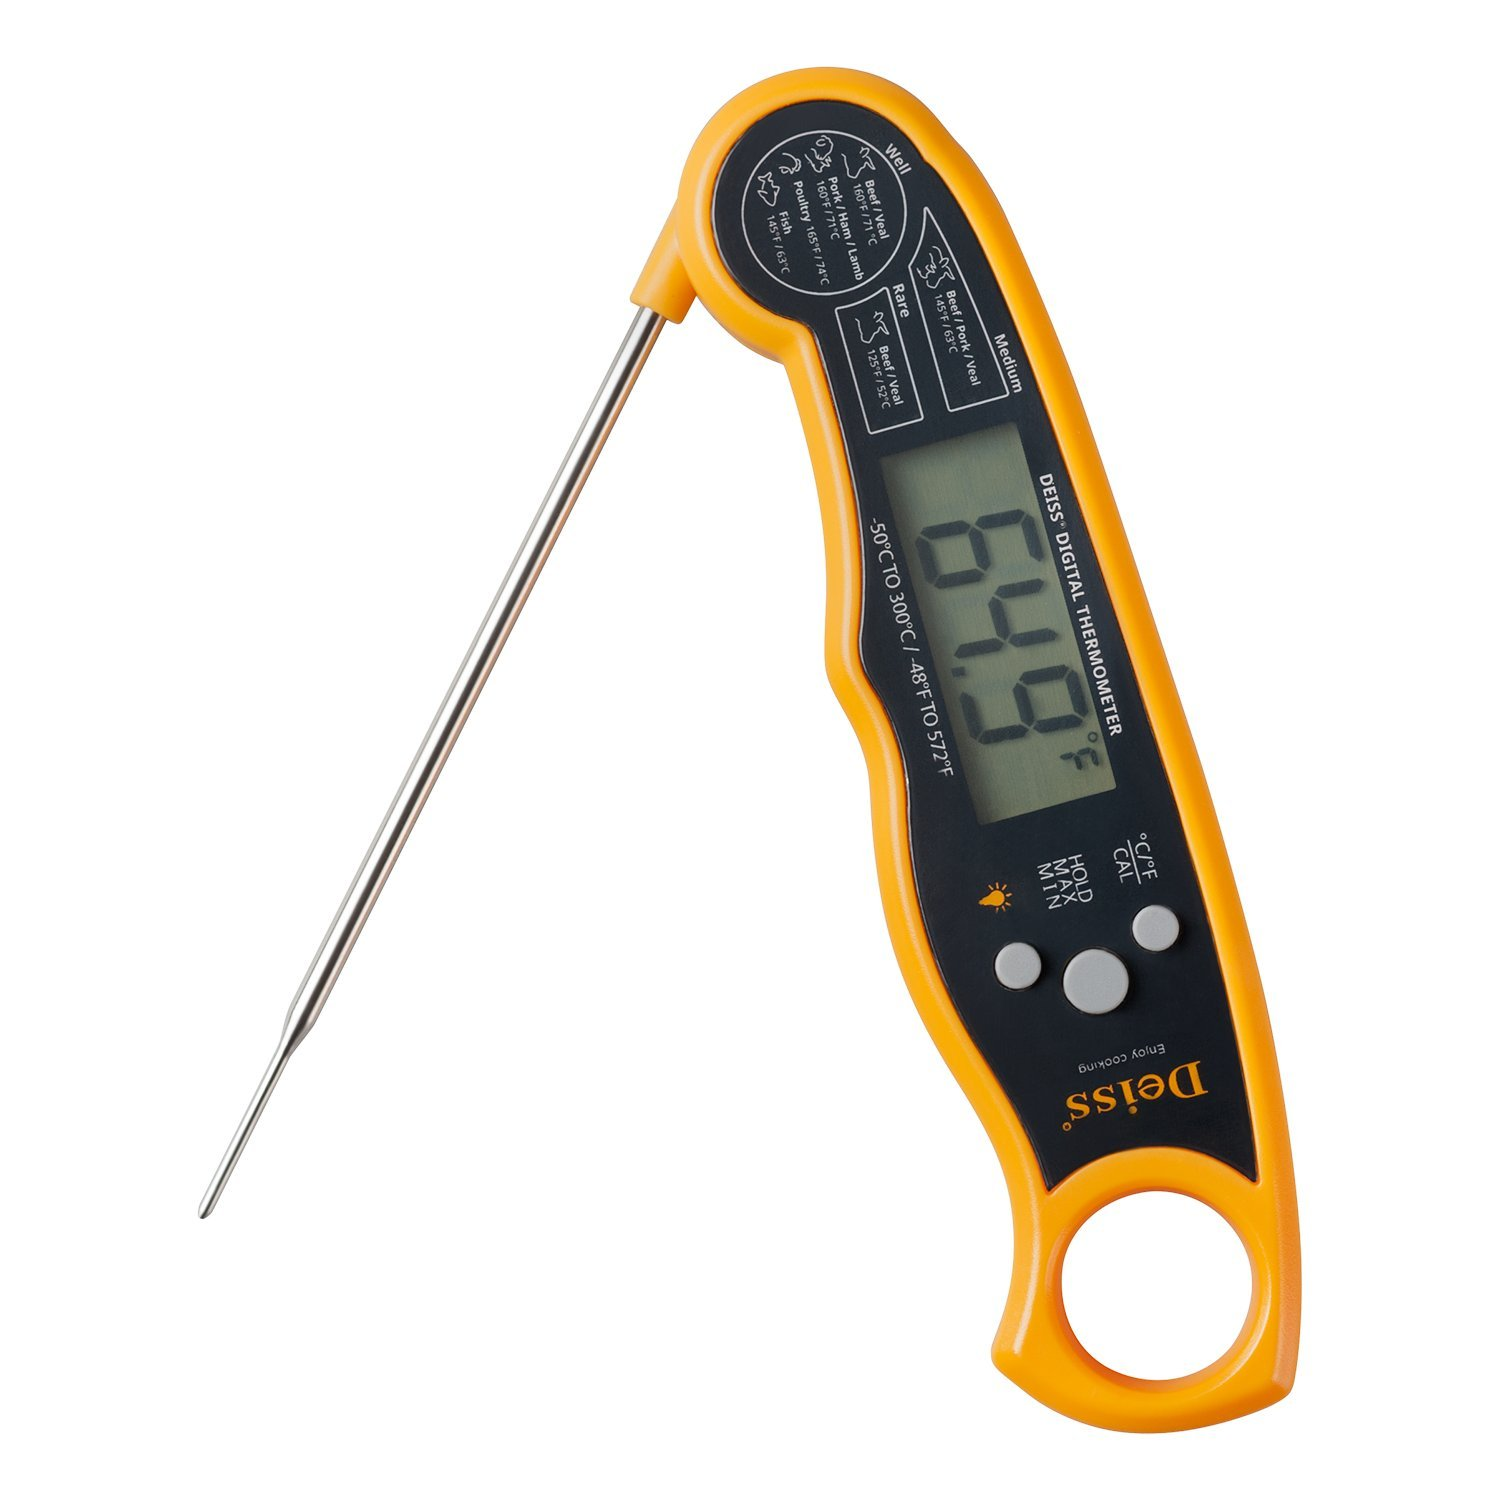 Deiss PRO Digital Meat Thermometer - Lightning Fast Precise Readings with Backlight Display, Memory Function and Calibration for Coffee, BBQ, Beef, Pork, Poultry, Fish - Instant Read Thermometer